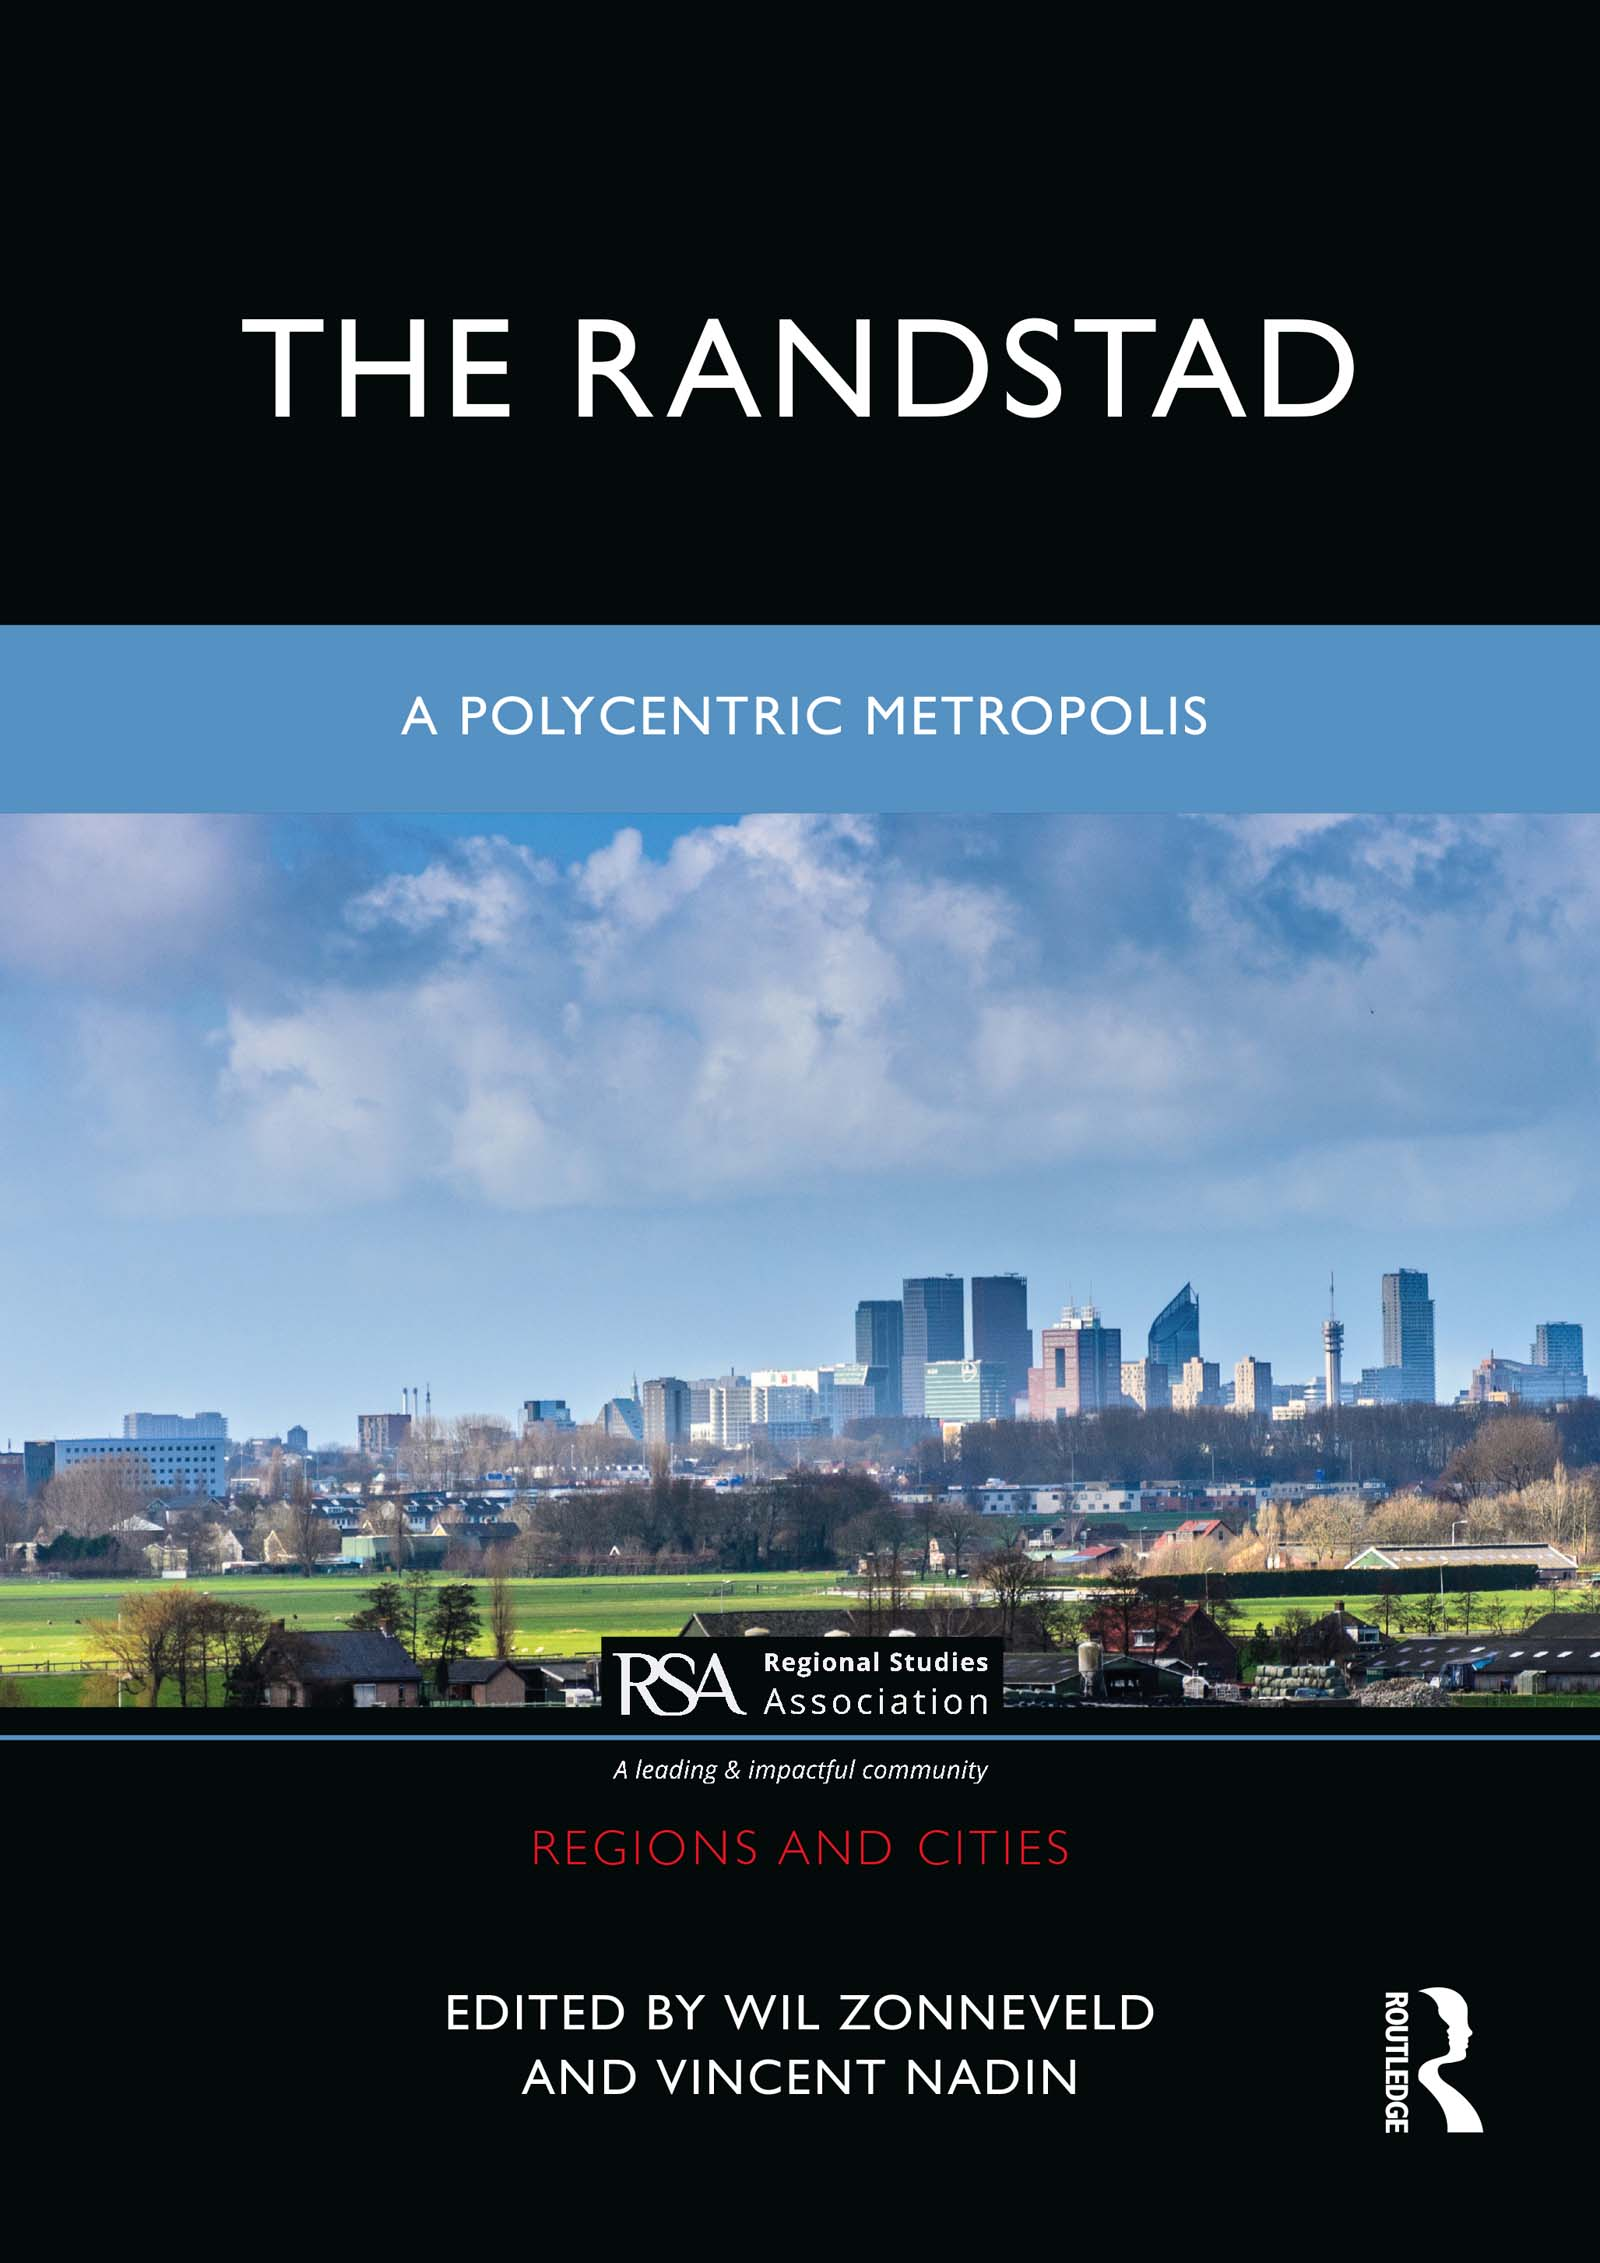 The making of the urban structure of the Randstad